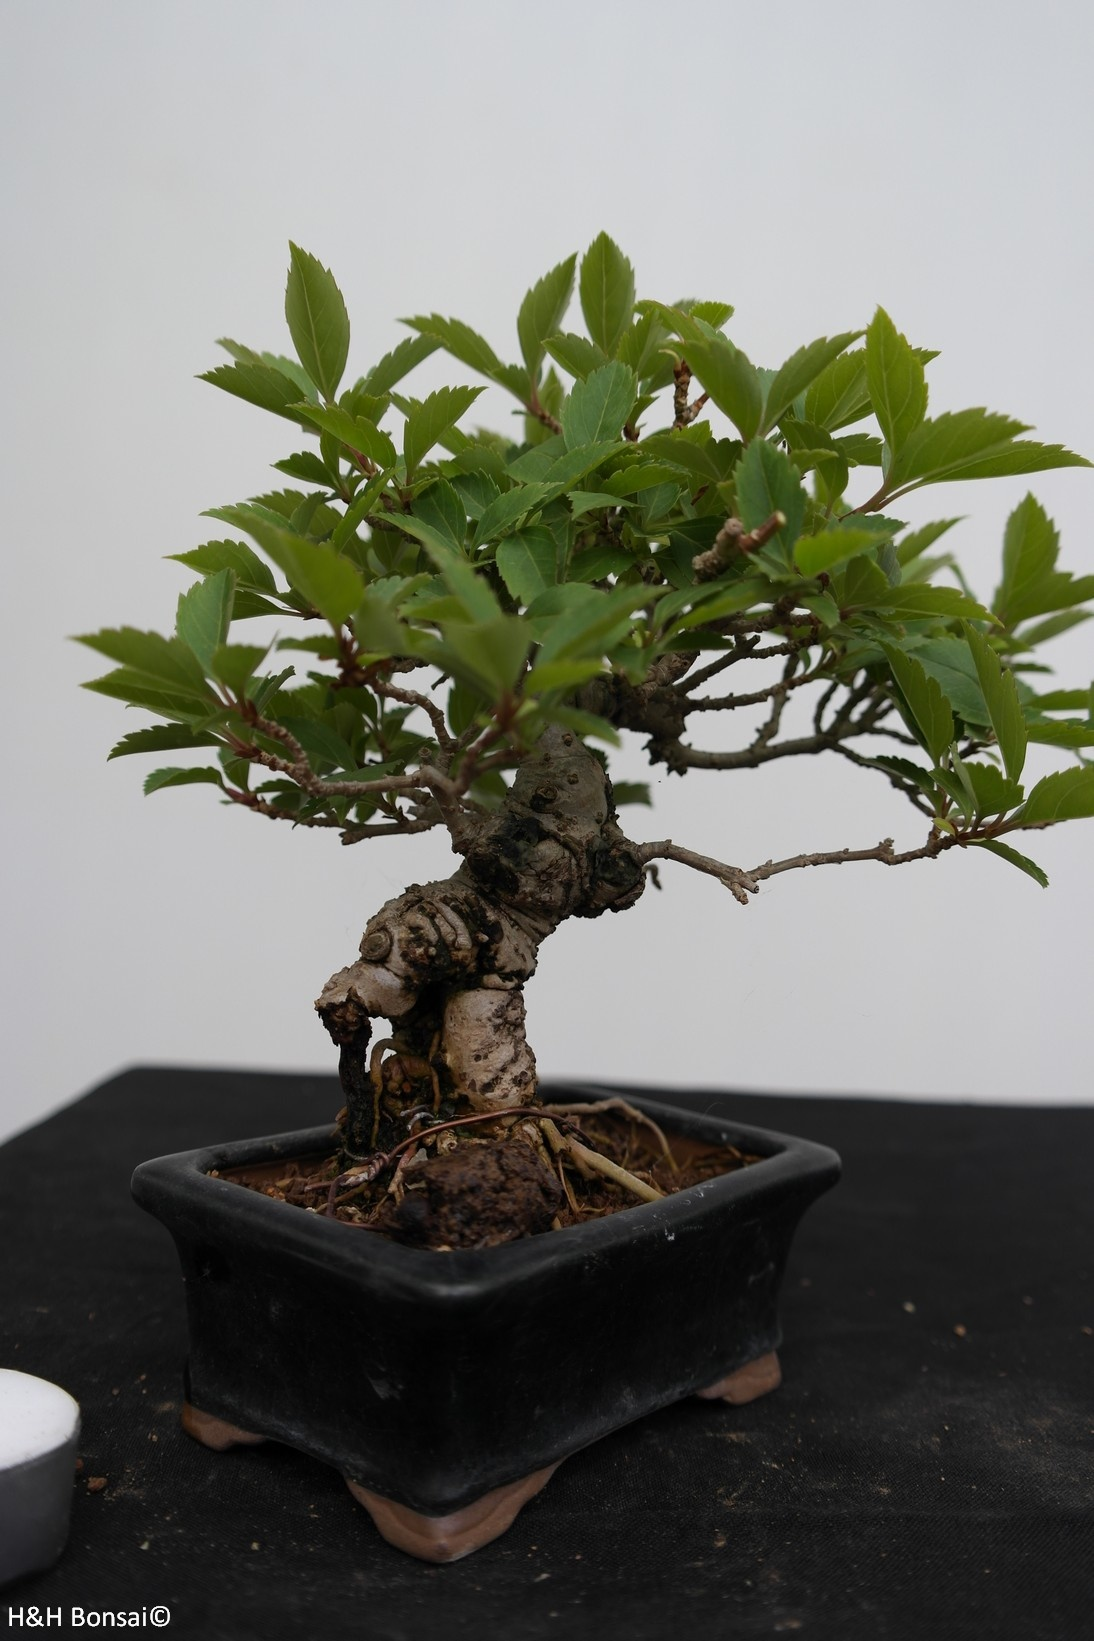 Bonsai Shohin Forsytie, Forsythia, no. 7517